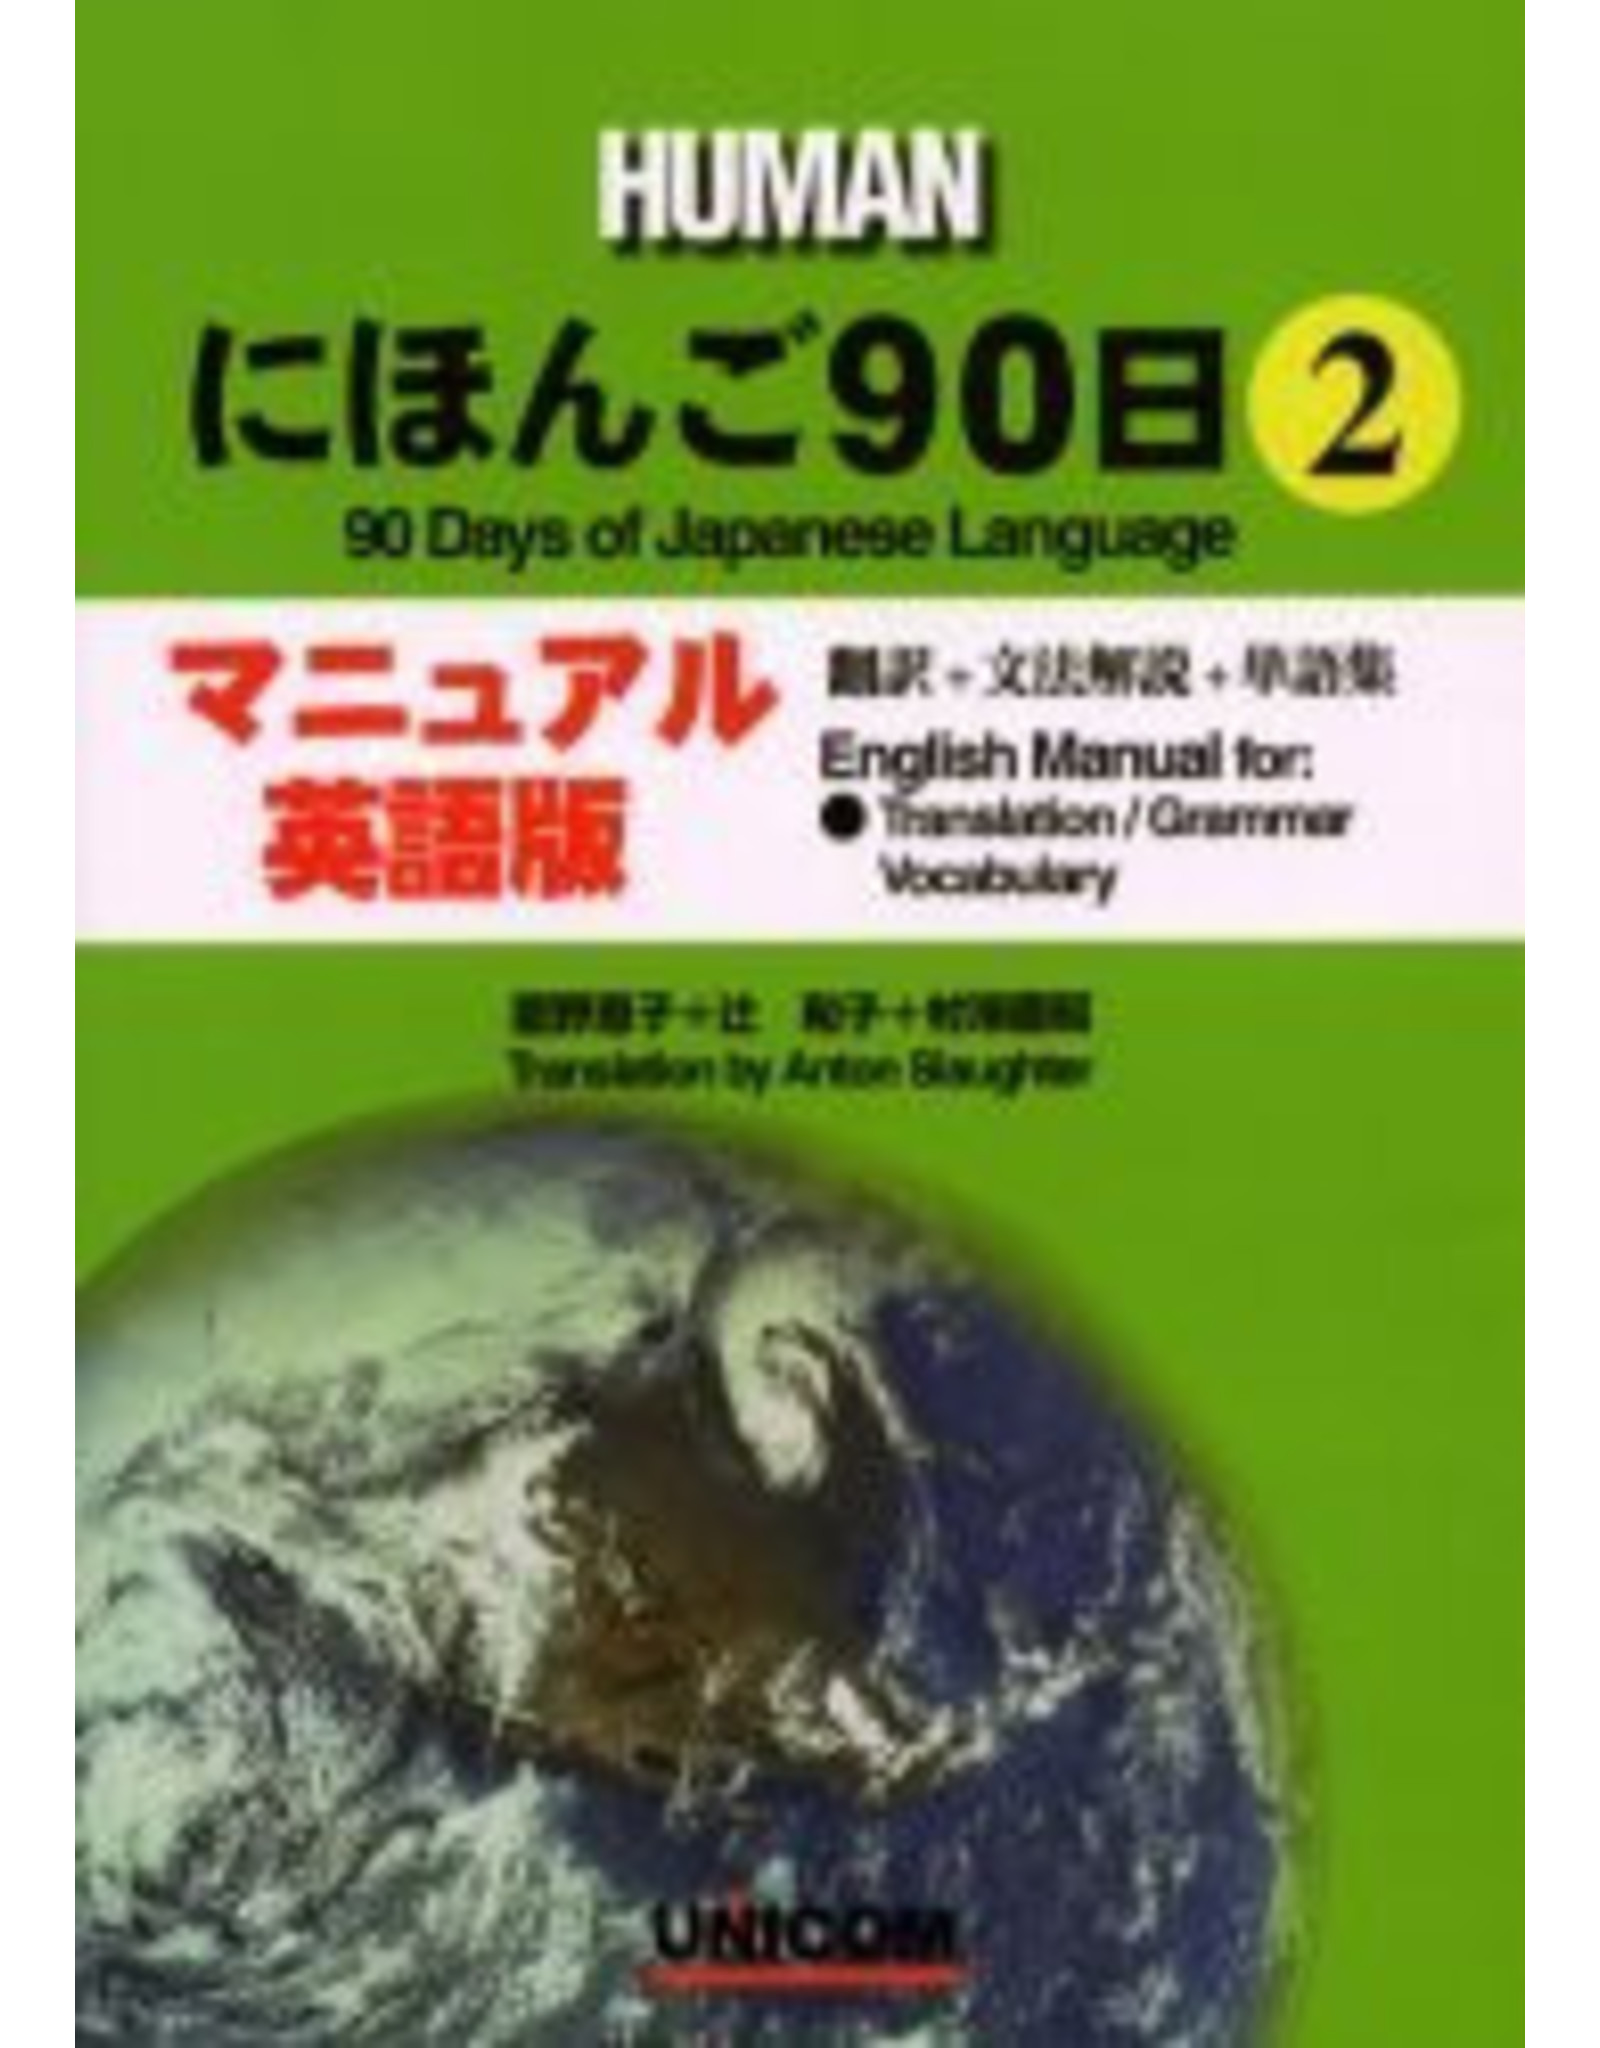 UNICOM 90 DAYS OF JAPANESE LANGUAGE (2) ENGLISH MANUAL FOR TRANSLATION / GRAMMAR VOCABULARY